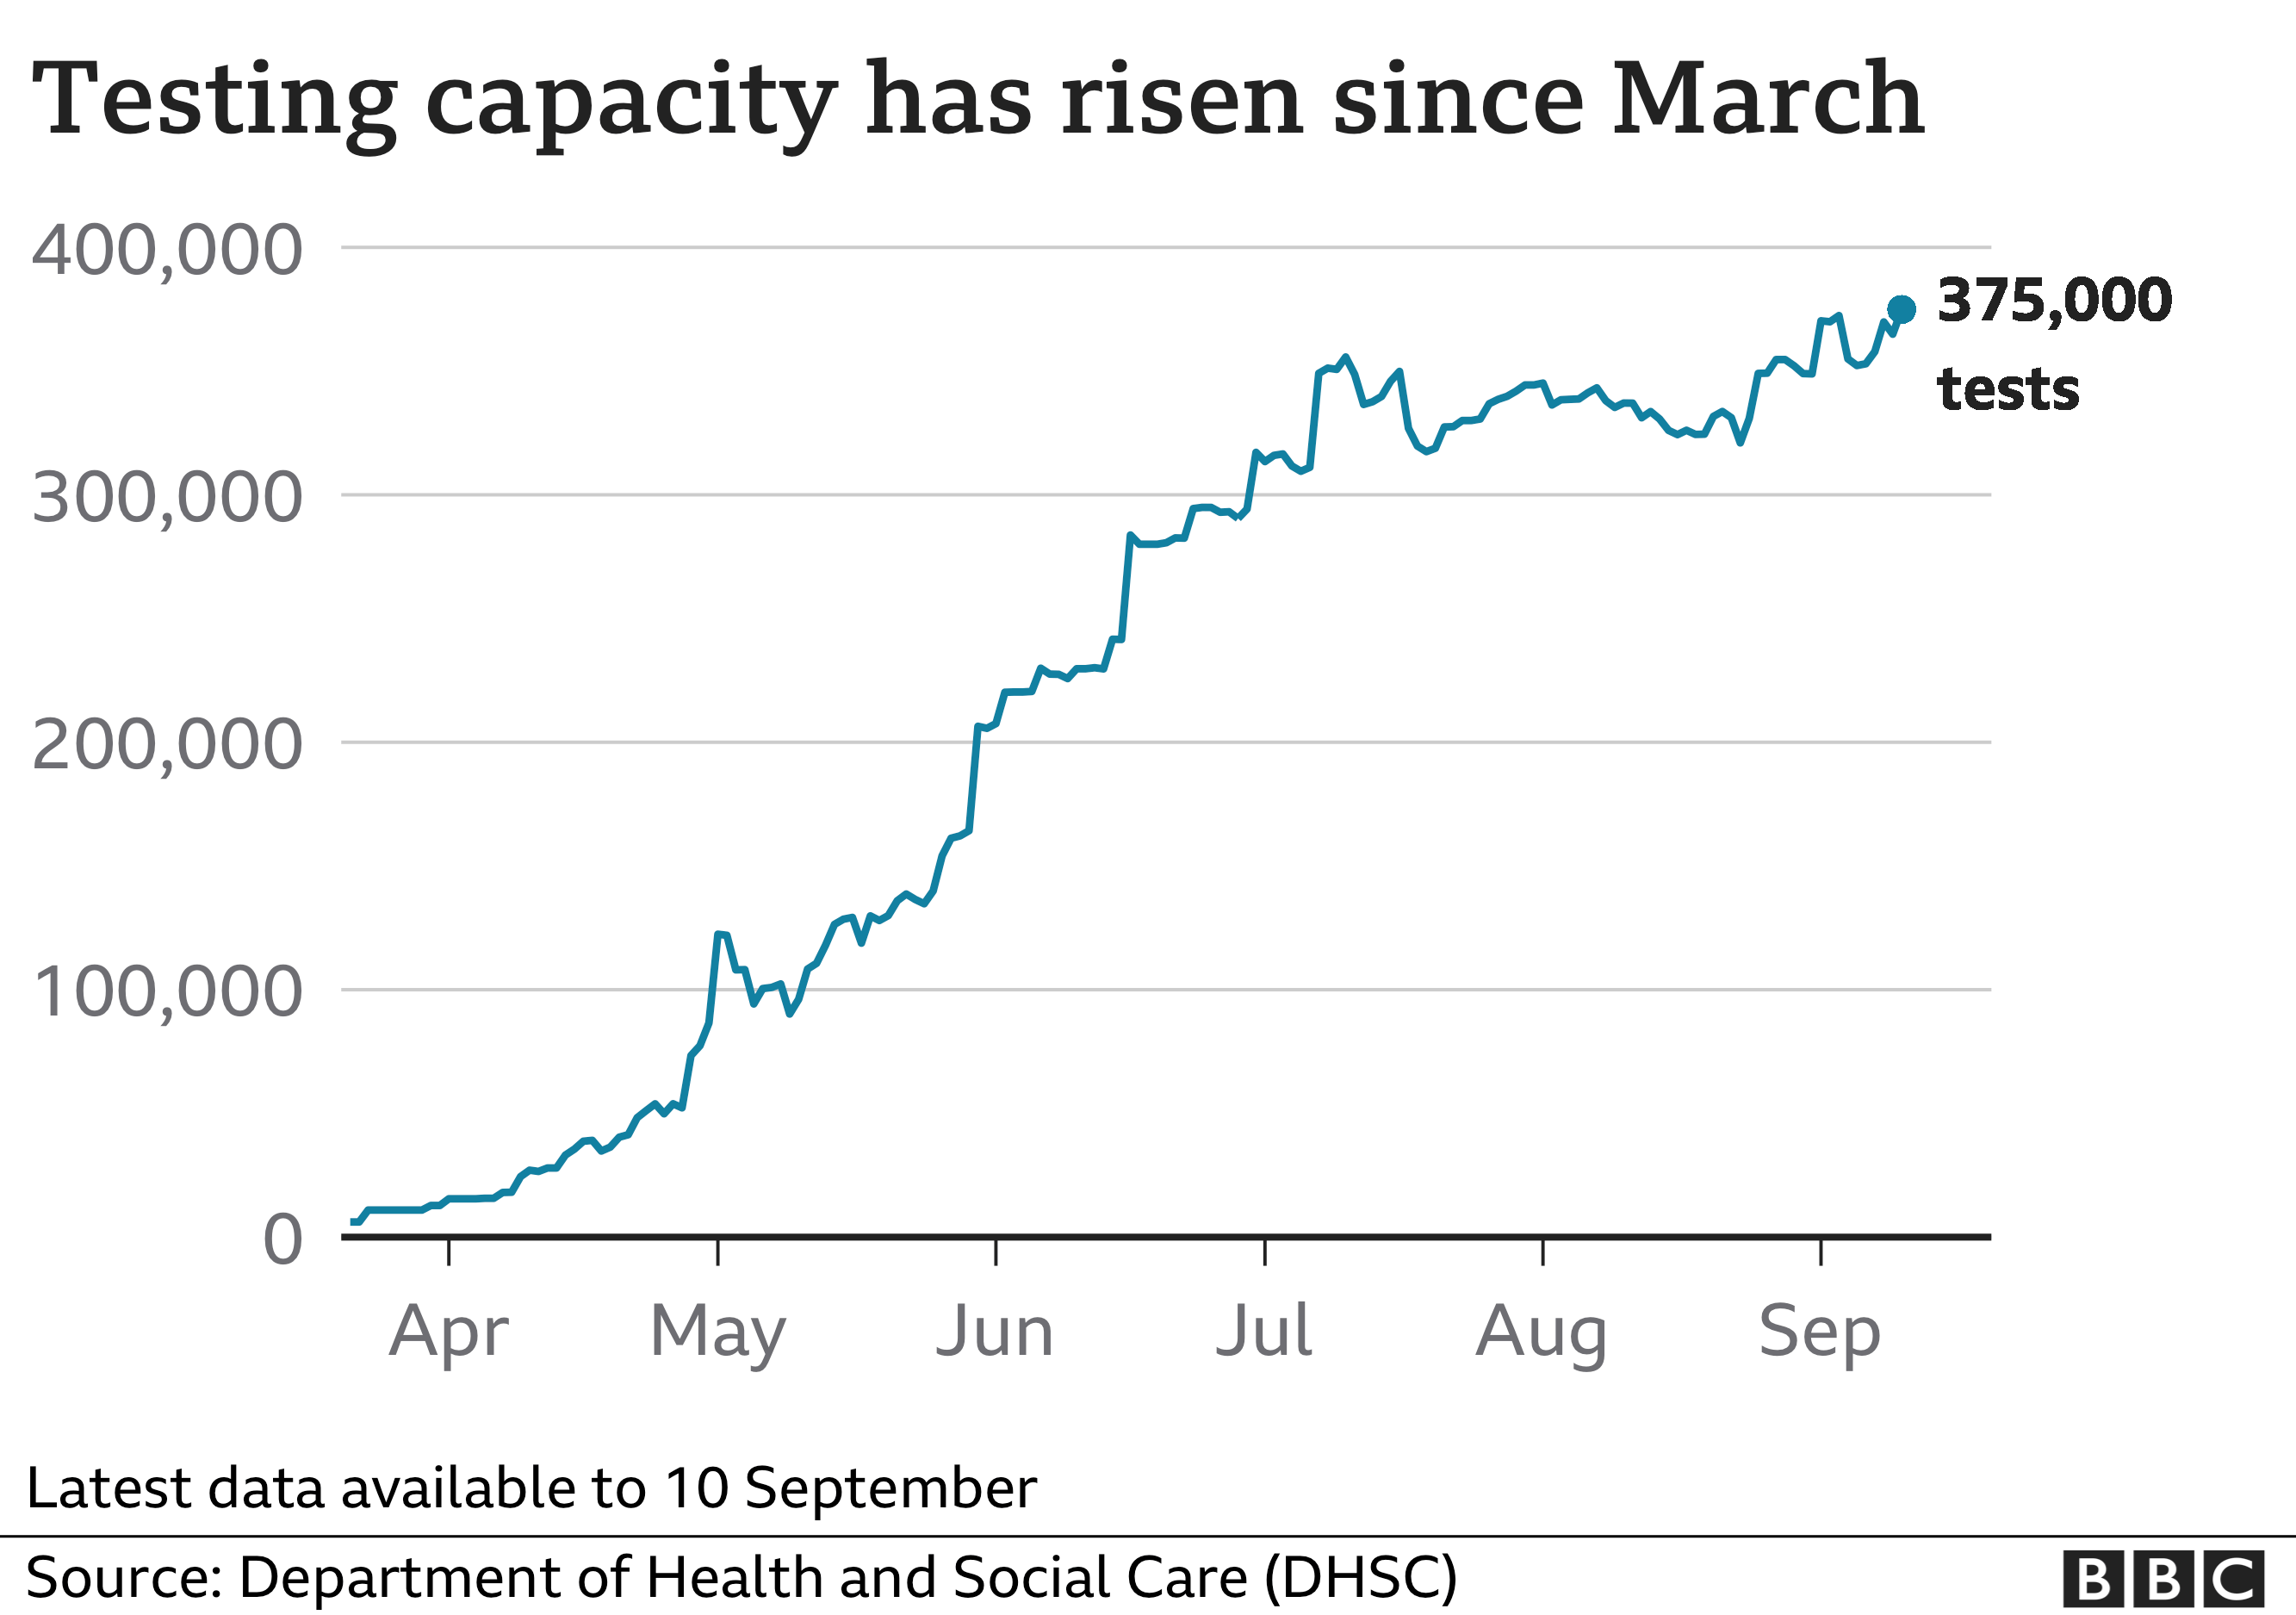 Chart showing overall testing capacity